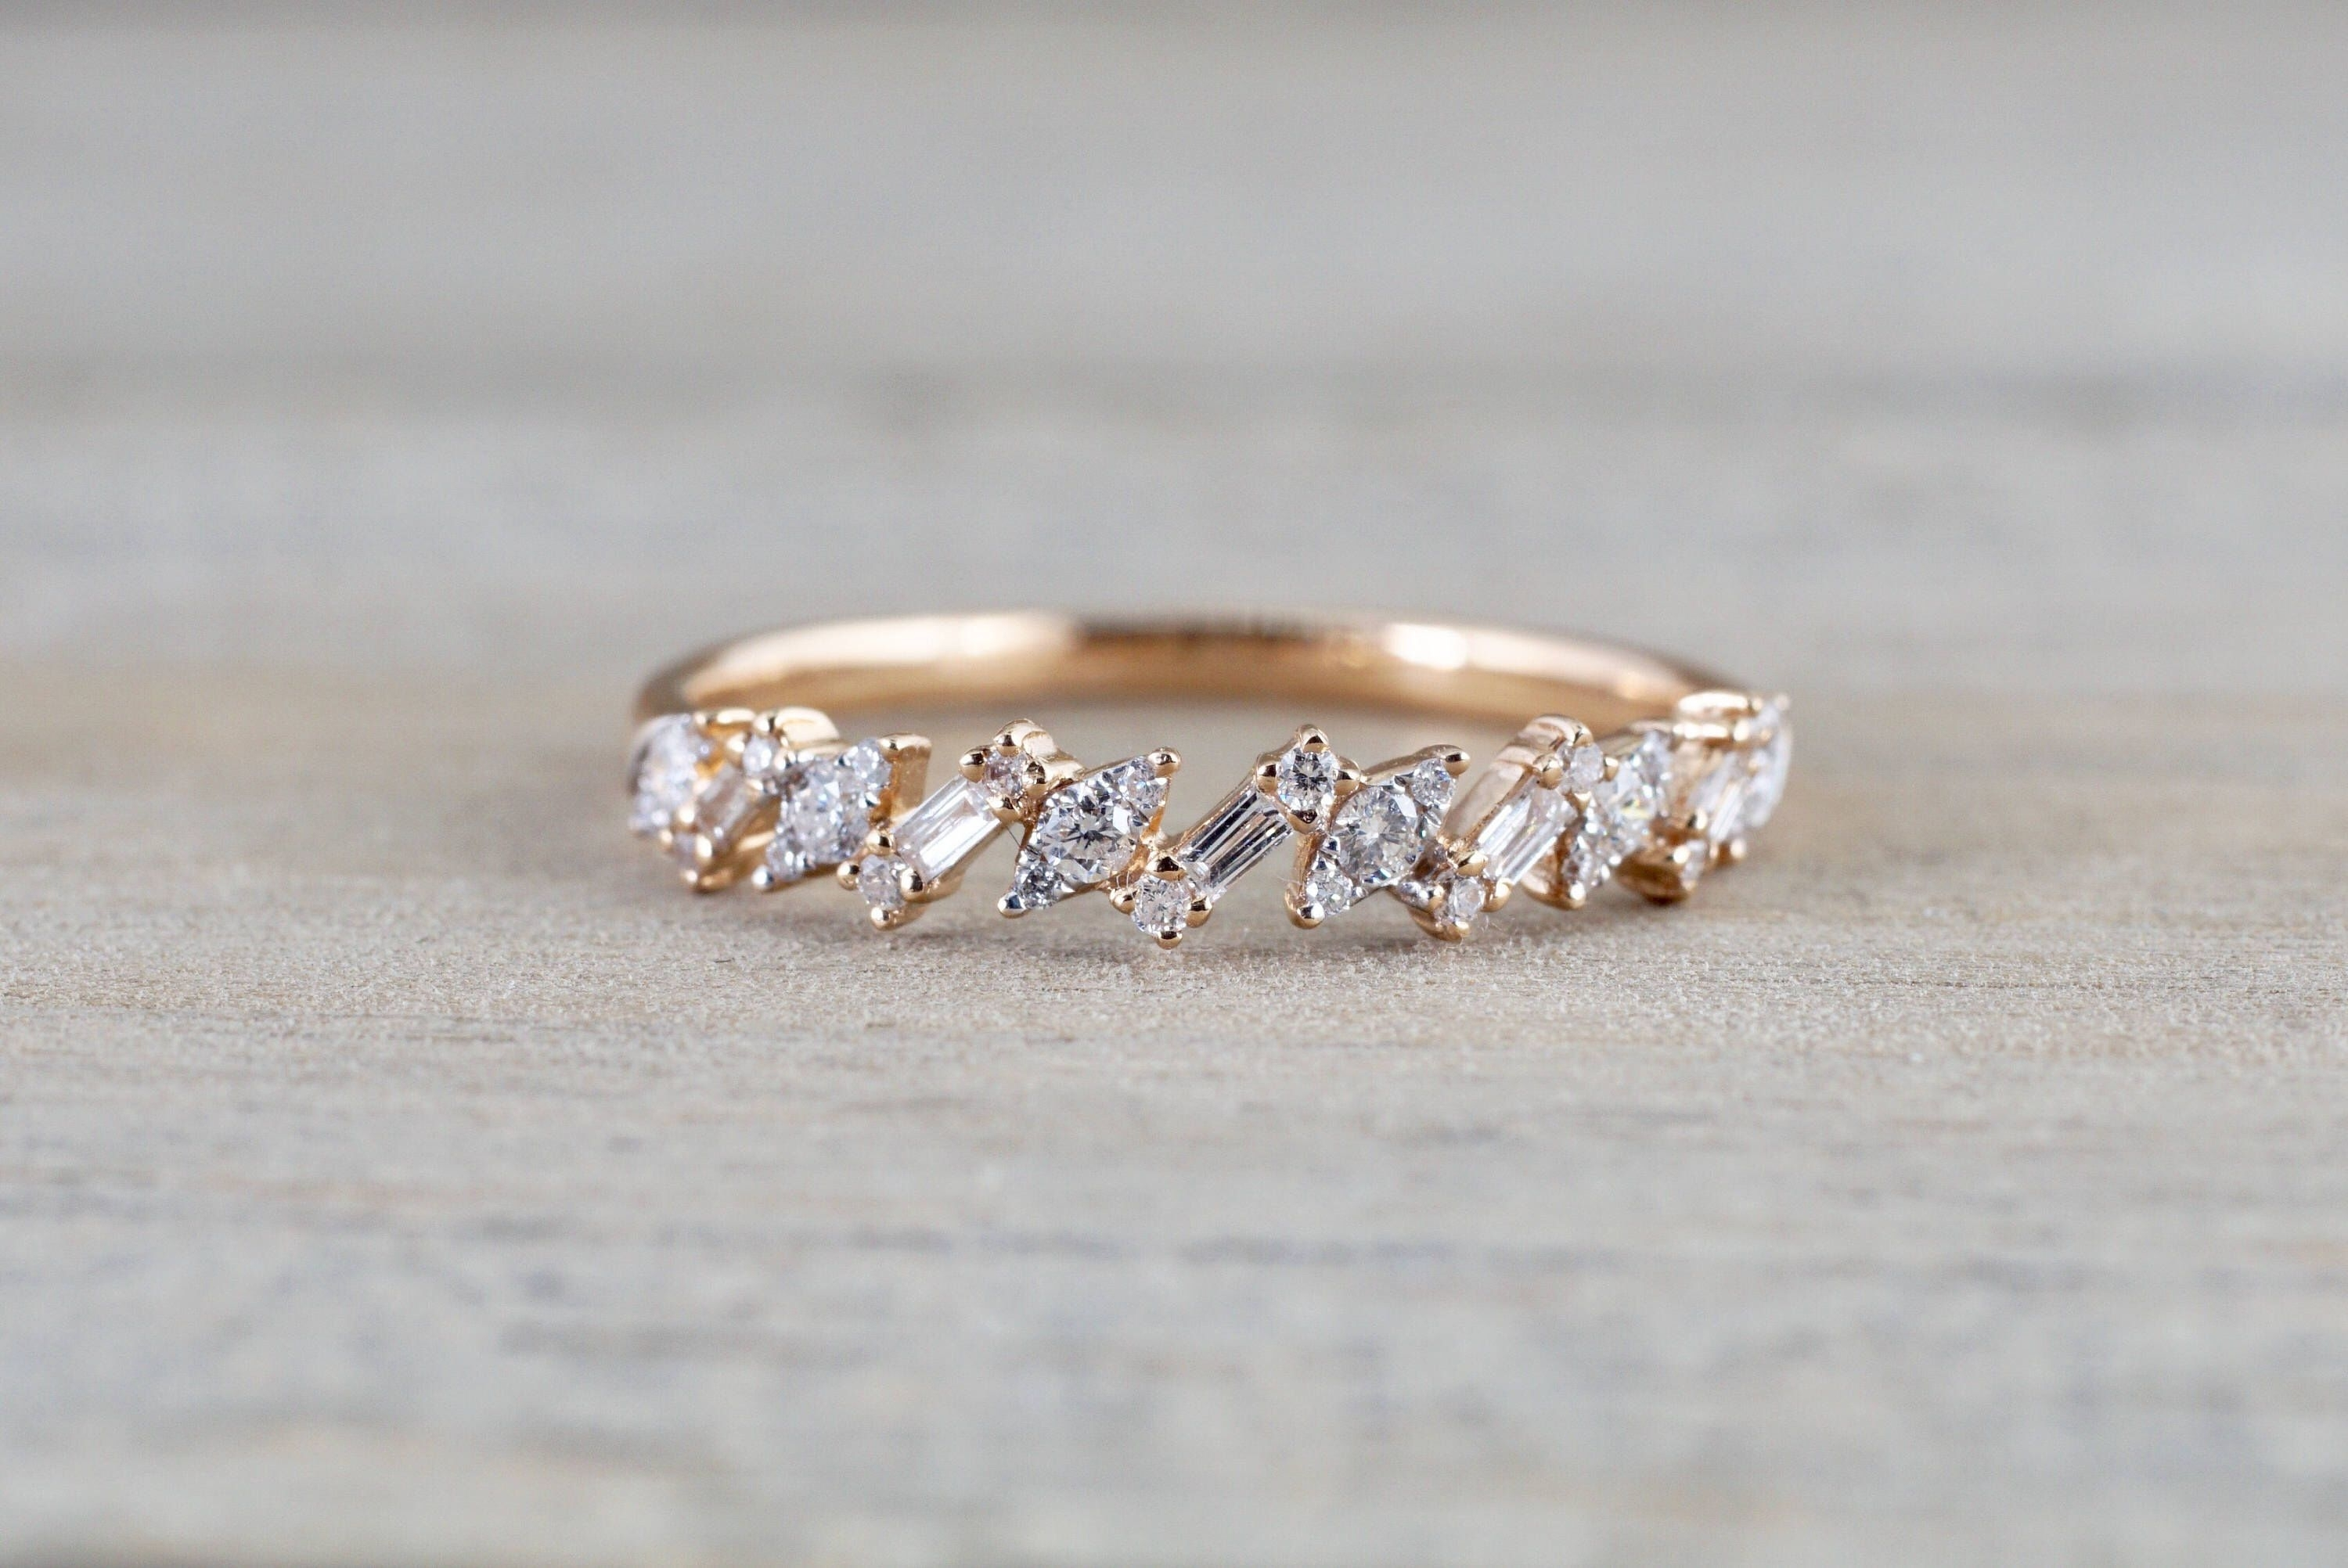 18K Rose Gold Diamond Baguette Zig Zag Wedding Anniversary Throughout Most Recently Released Diamond Zig Zag Anniversary Rings In 18K White Gold (Gallery 11 of 15)